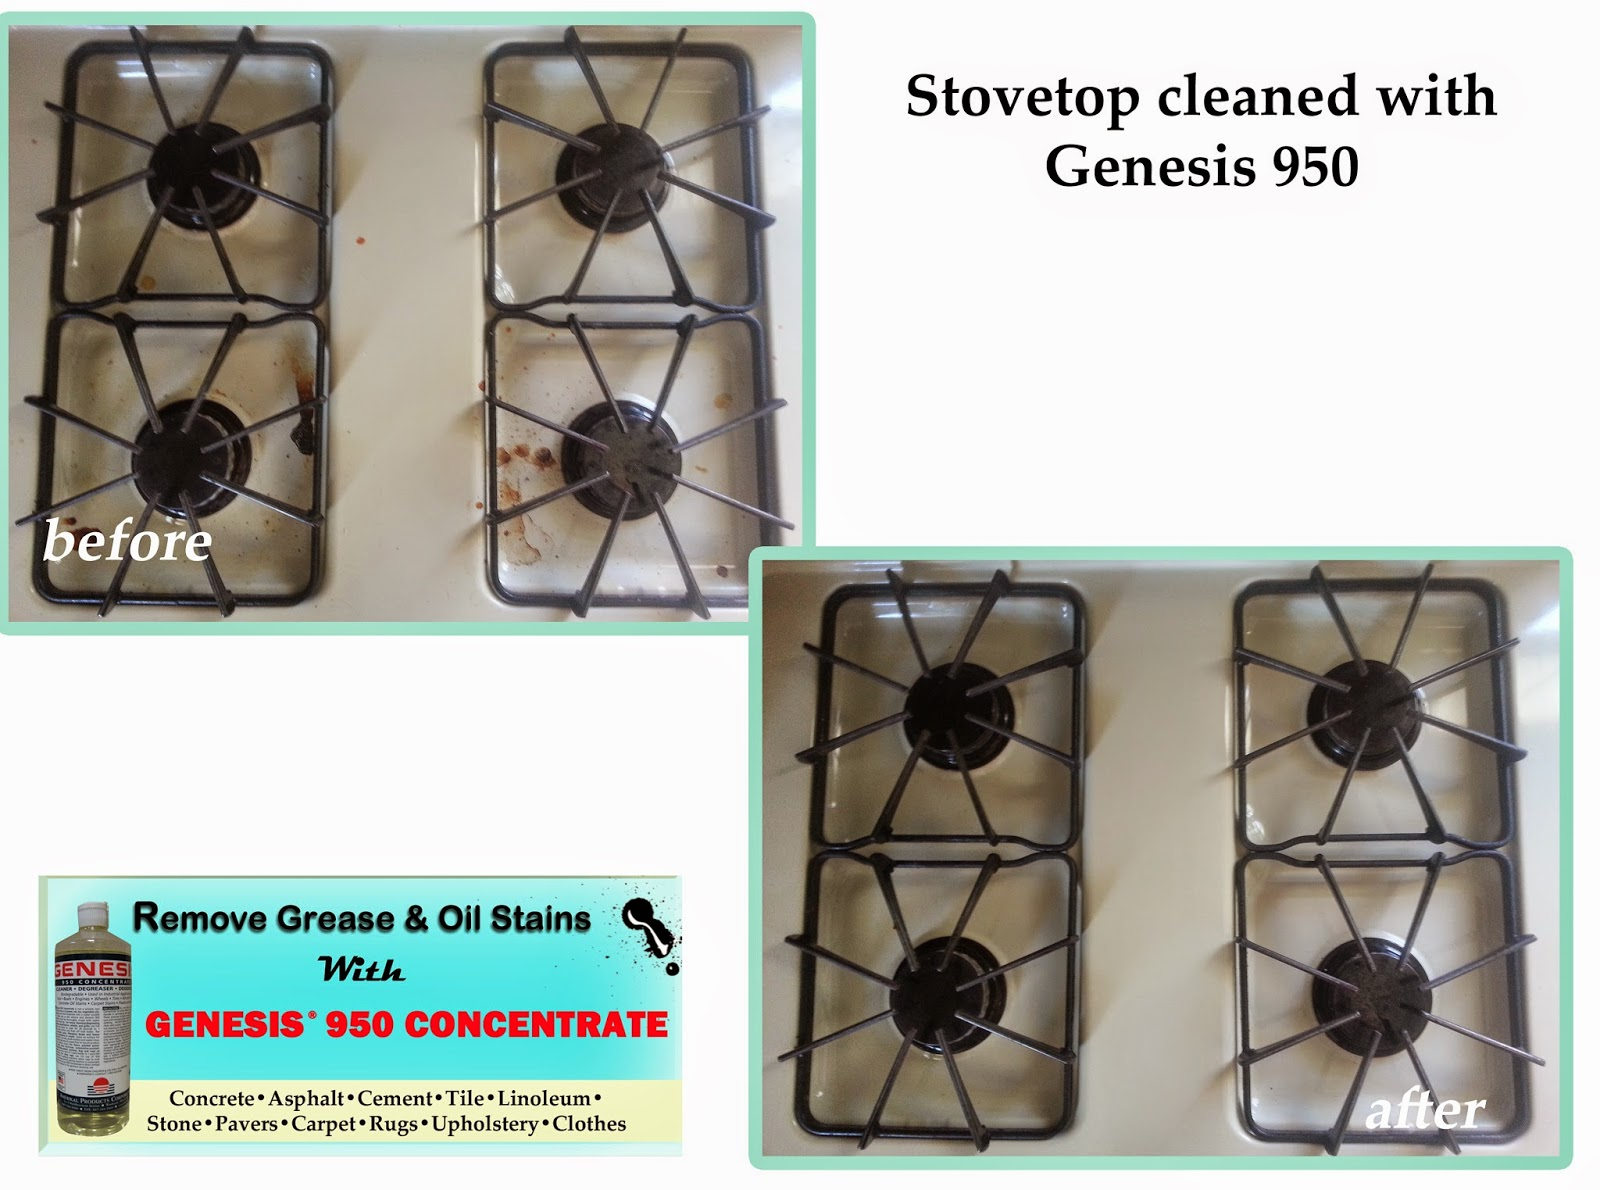 Clean Food, Oil & Grease From Stove Tops